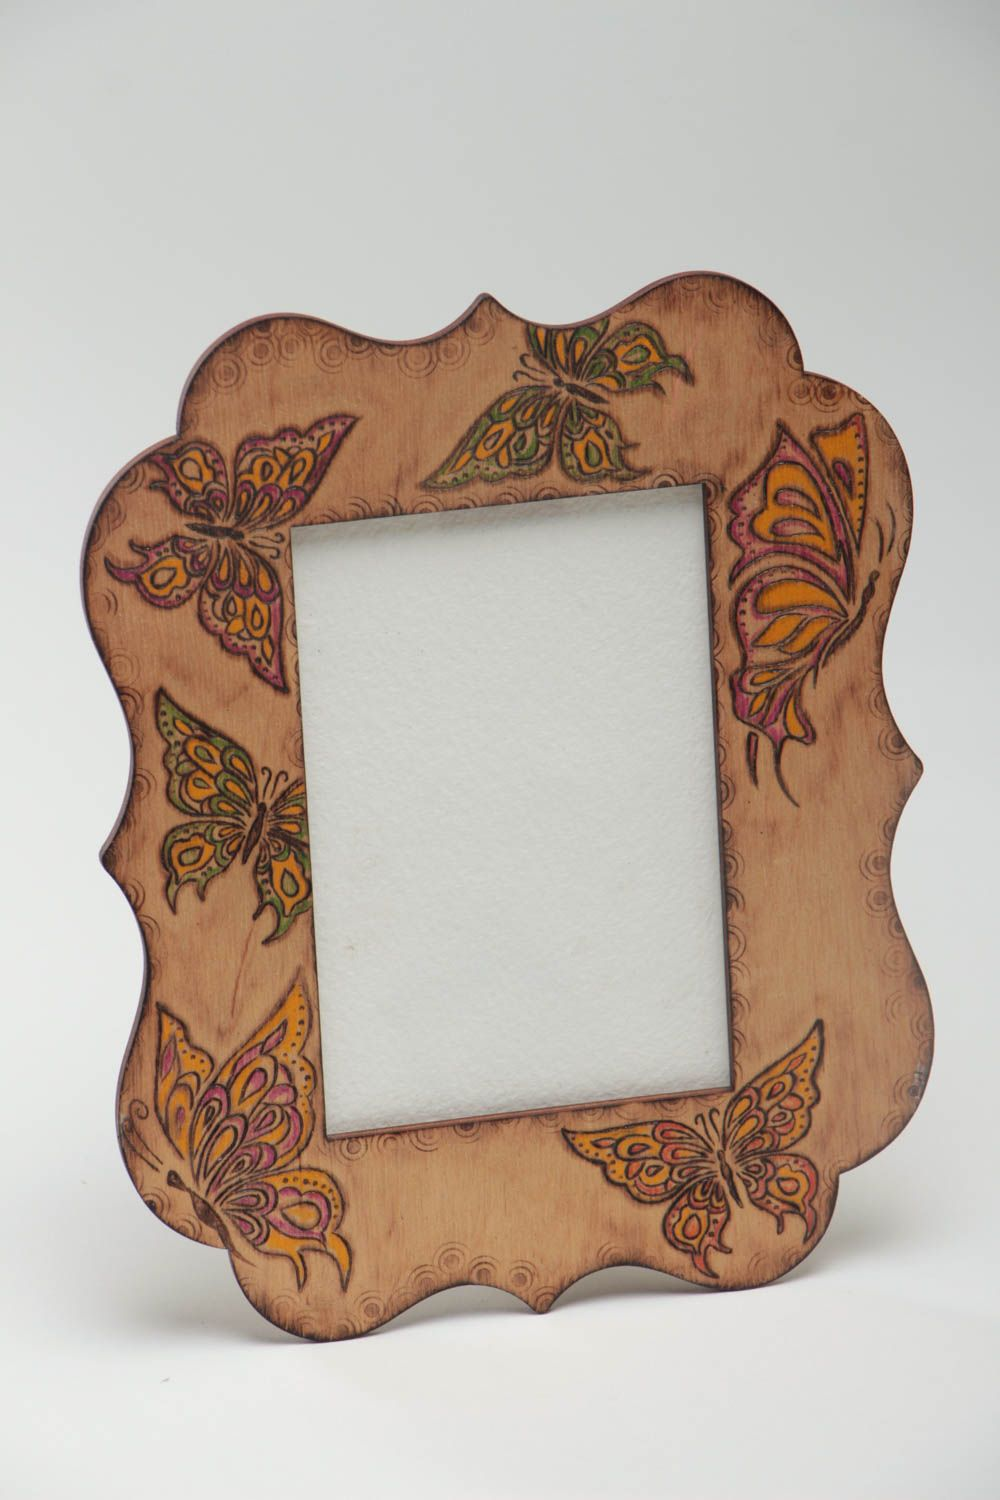 MADEHEART > Wooden photo frame homemade home decor wooden gifts ...